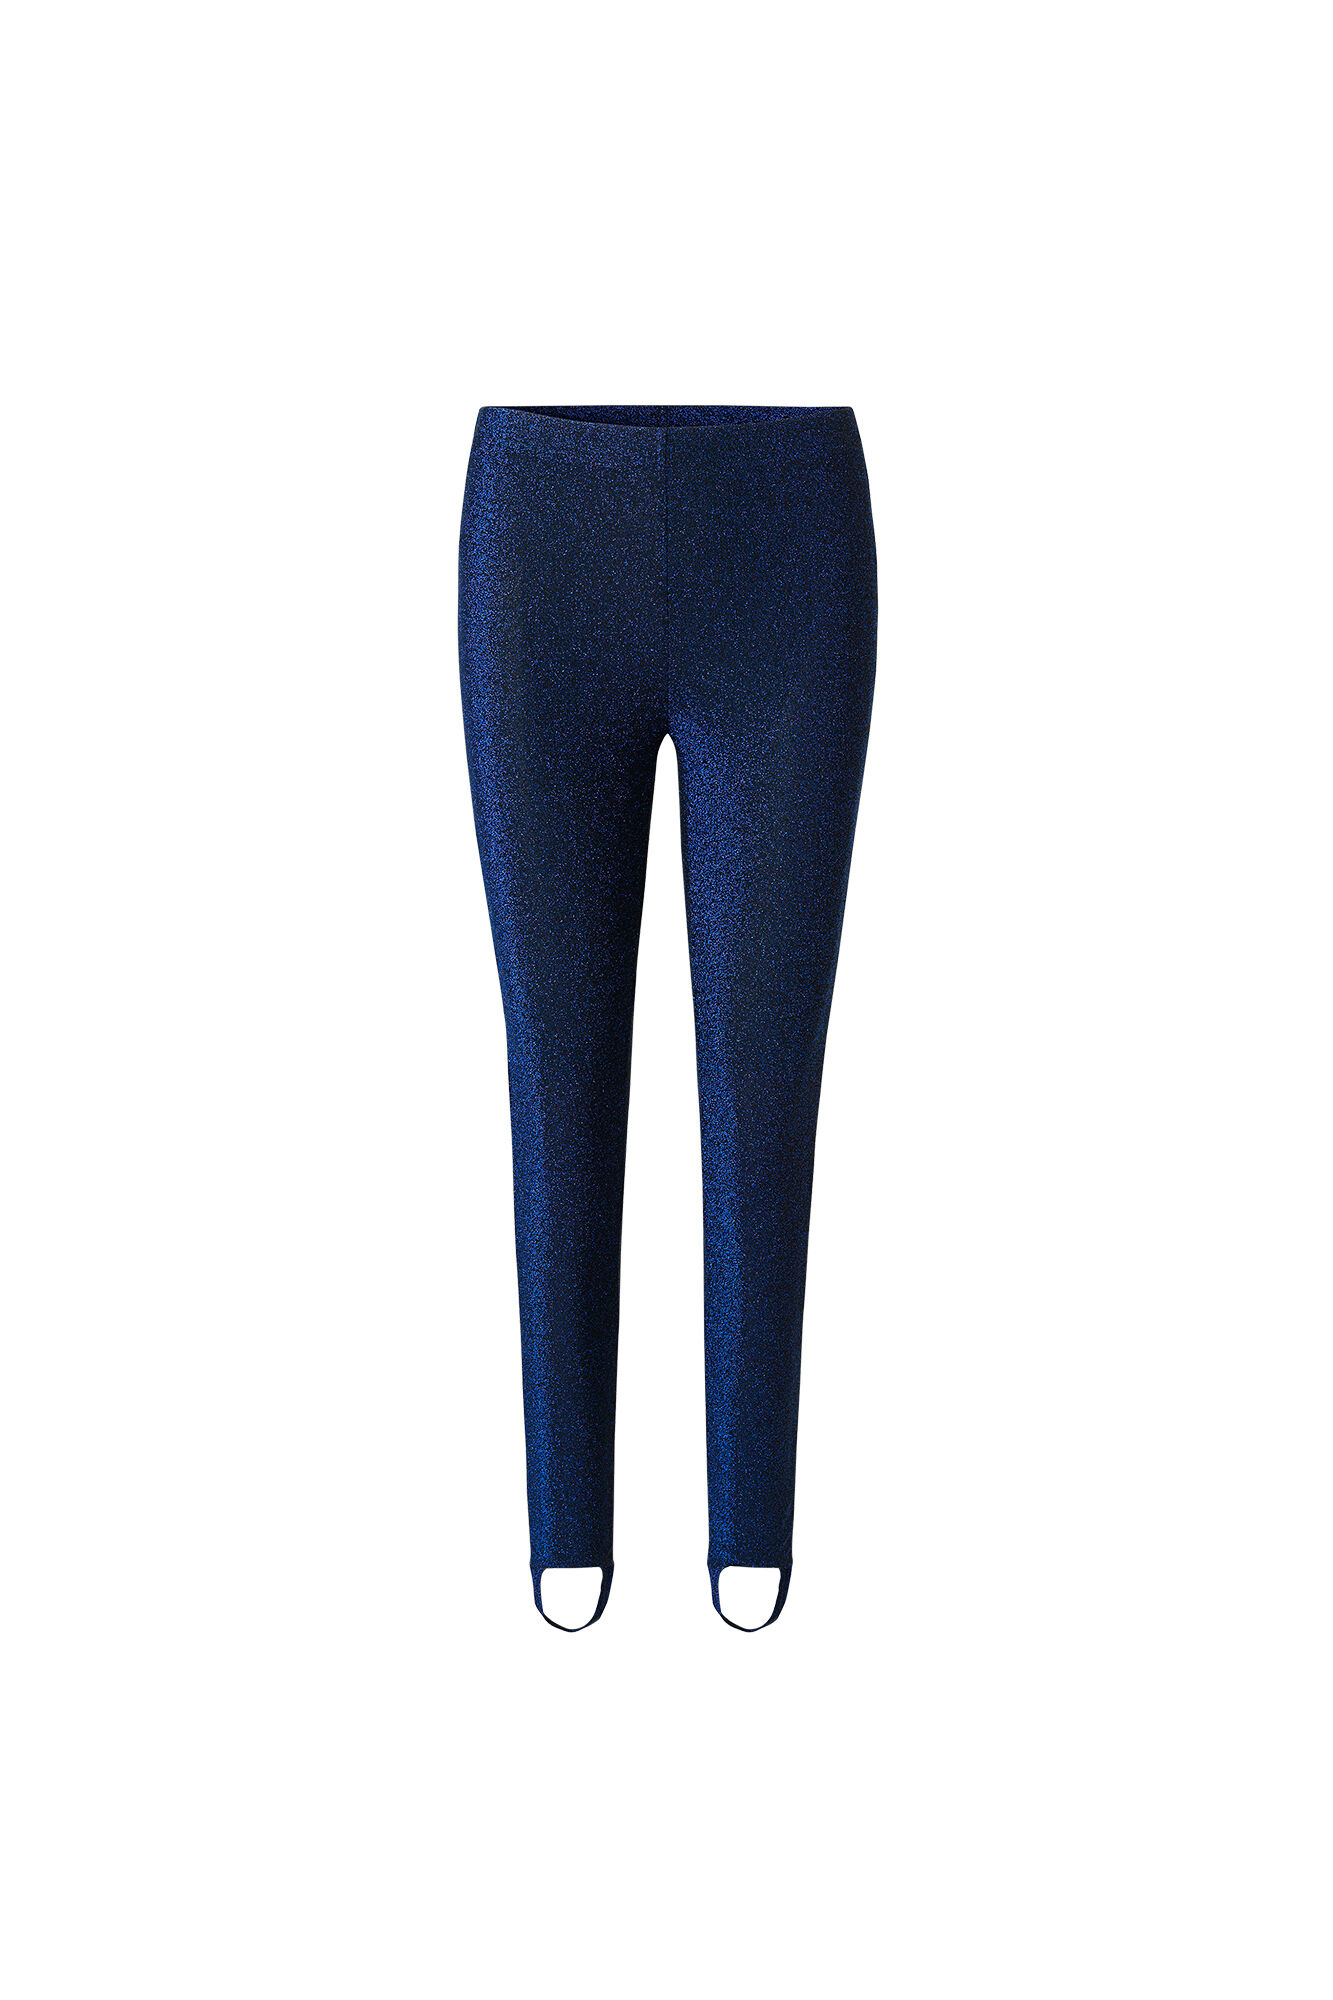 ENCLASS LEGGINGS 5933, NAVY GLITTER